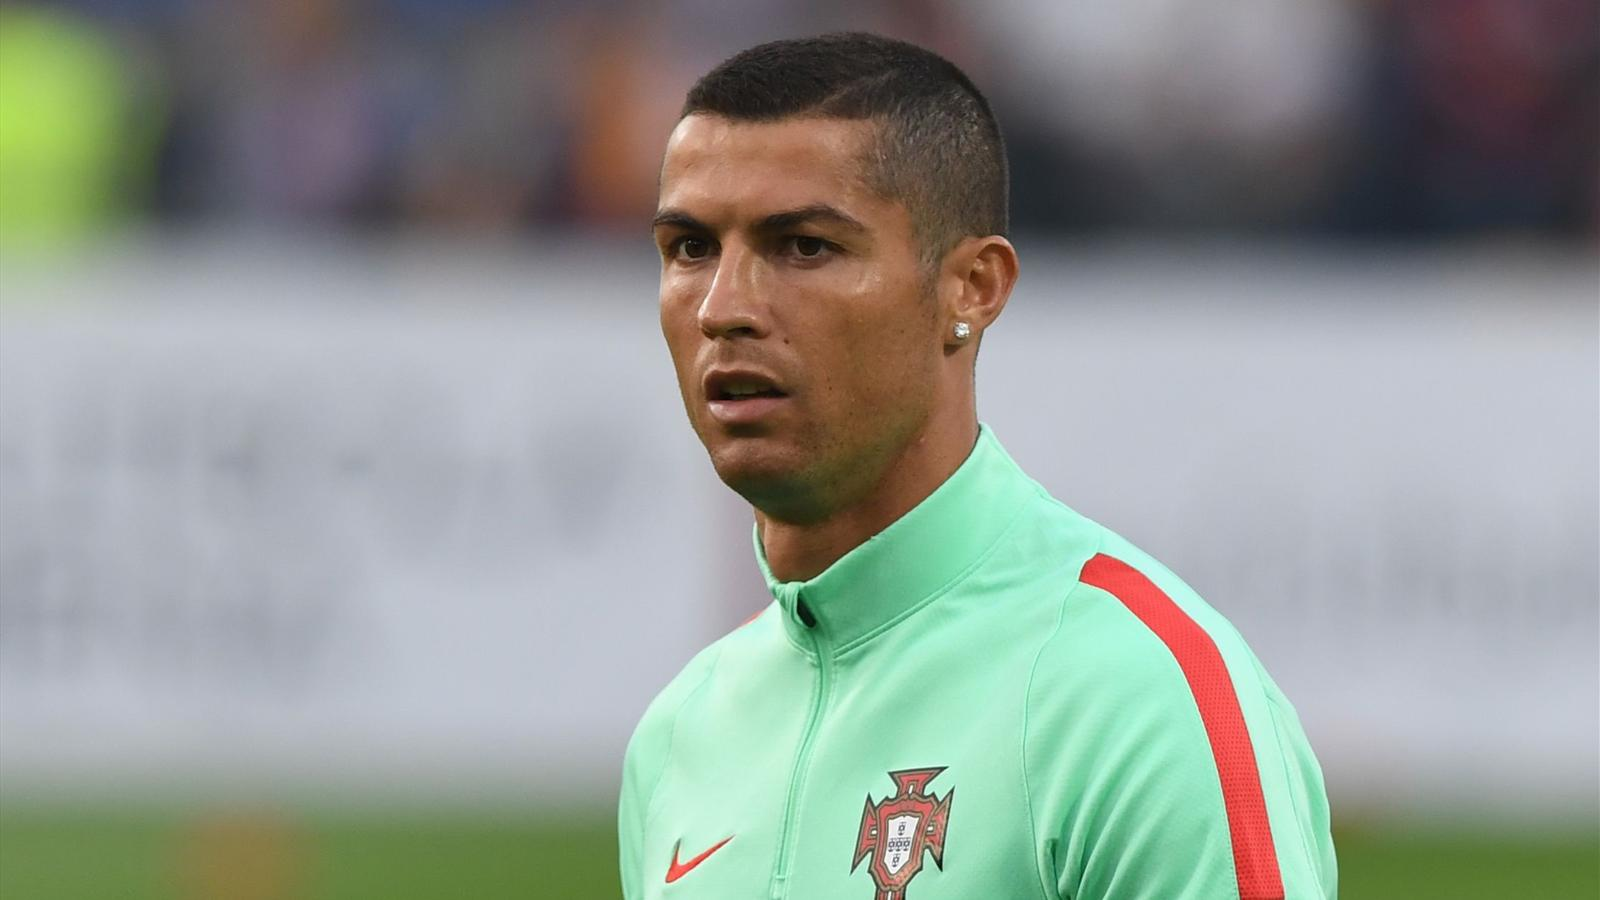 Jorge Mendes tells Real that Cristiano Ronaldo has numerous offers - report - Liga 2017-2018 ...